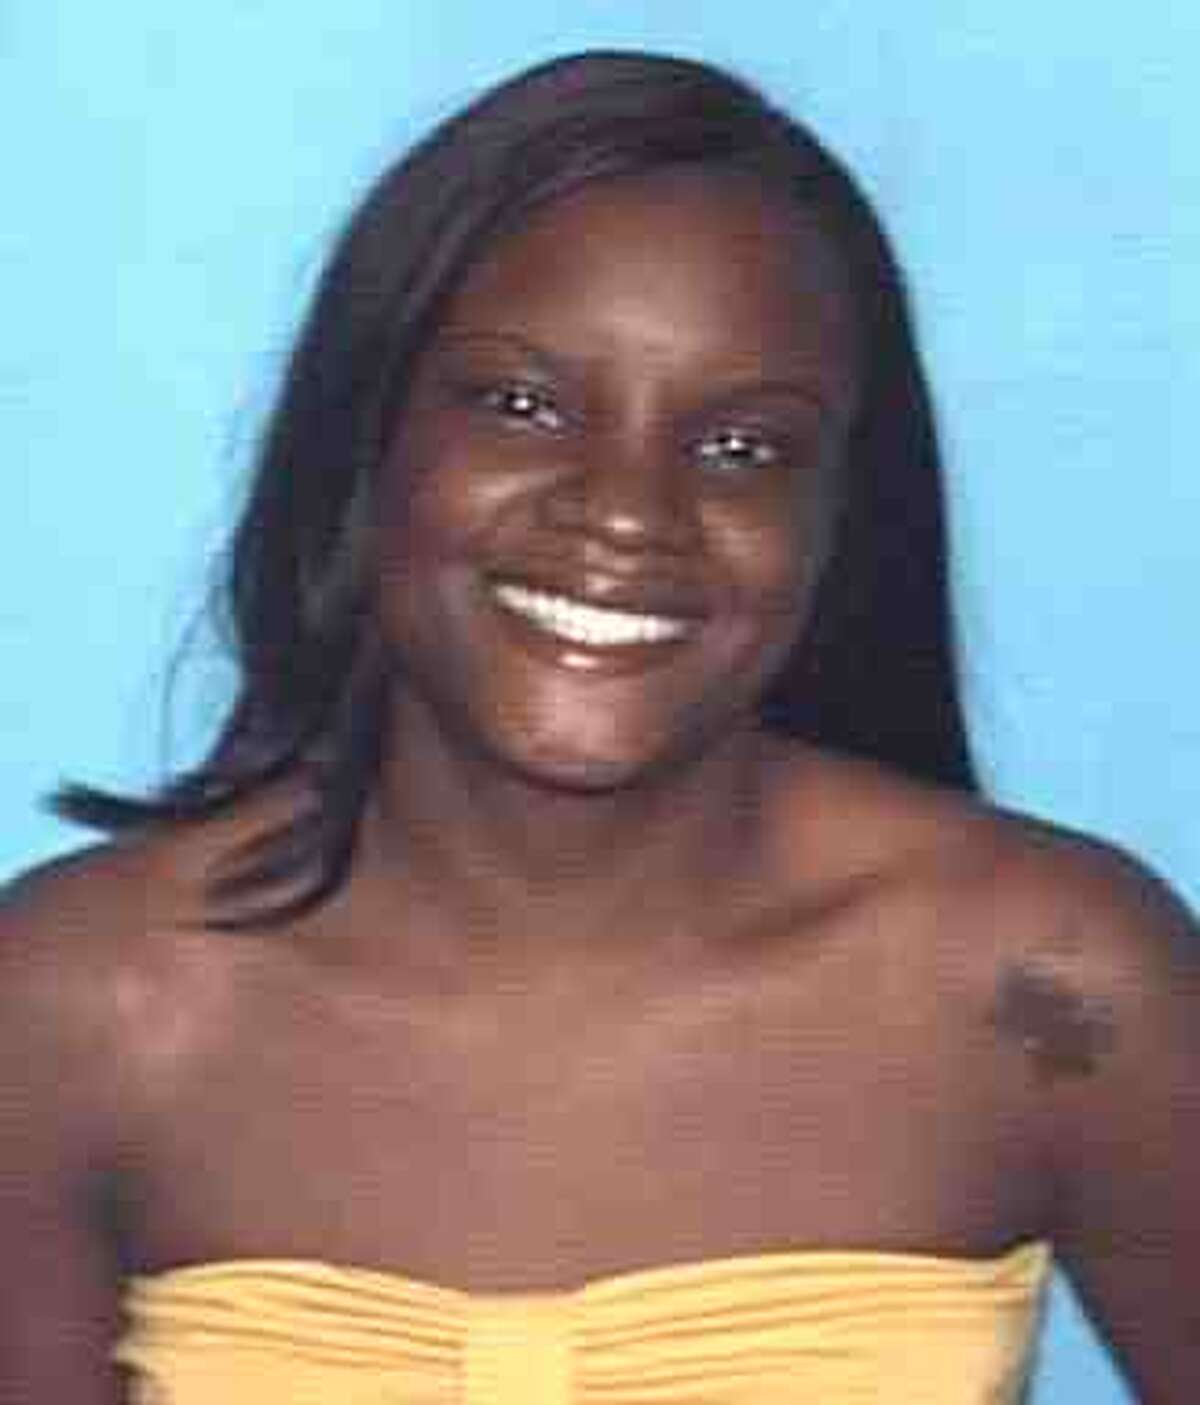 Crystal Davis was found stabbed to death in her East Side residence in 2013.